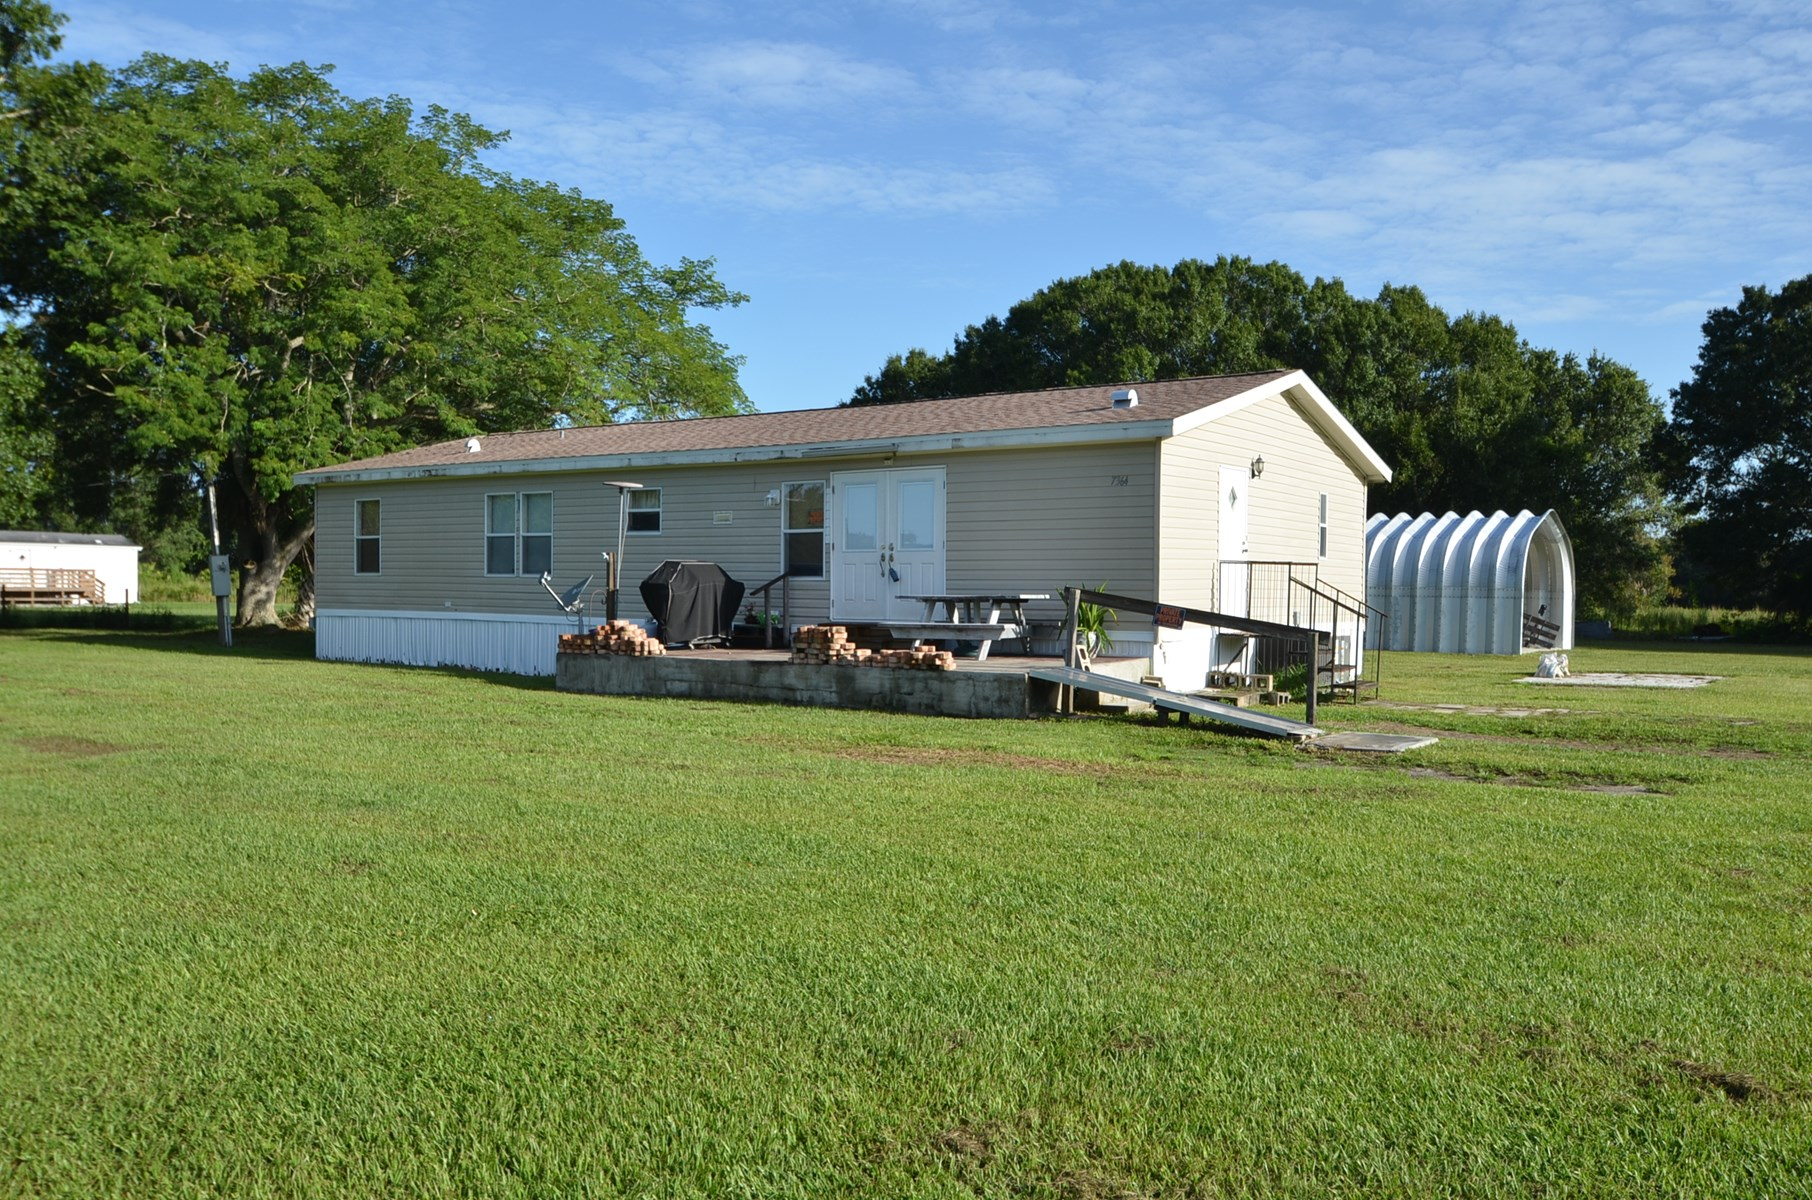 3 BR 2 BA home on over 1/2 an acre of land!